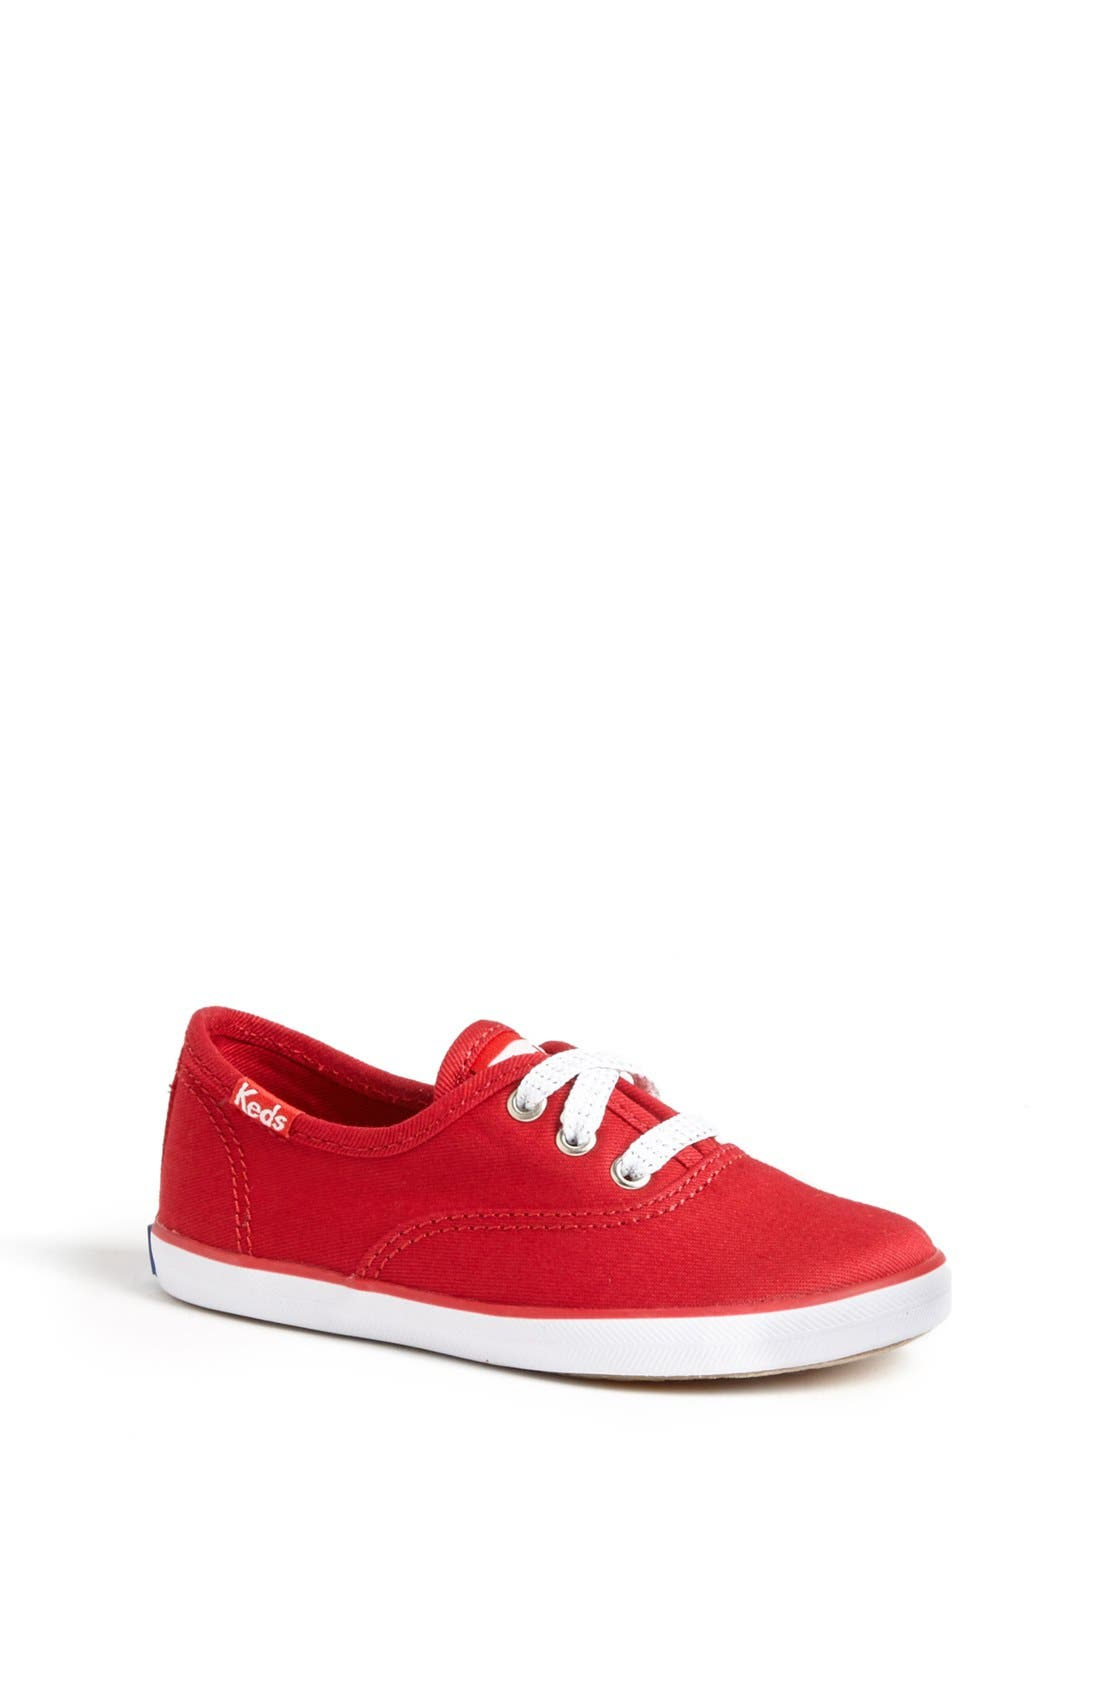 Alternate Image 1 Selected - Keds® 'Champion K' Sneaker (Toddler, Little Kid & Big Kid)